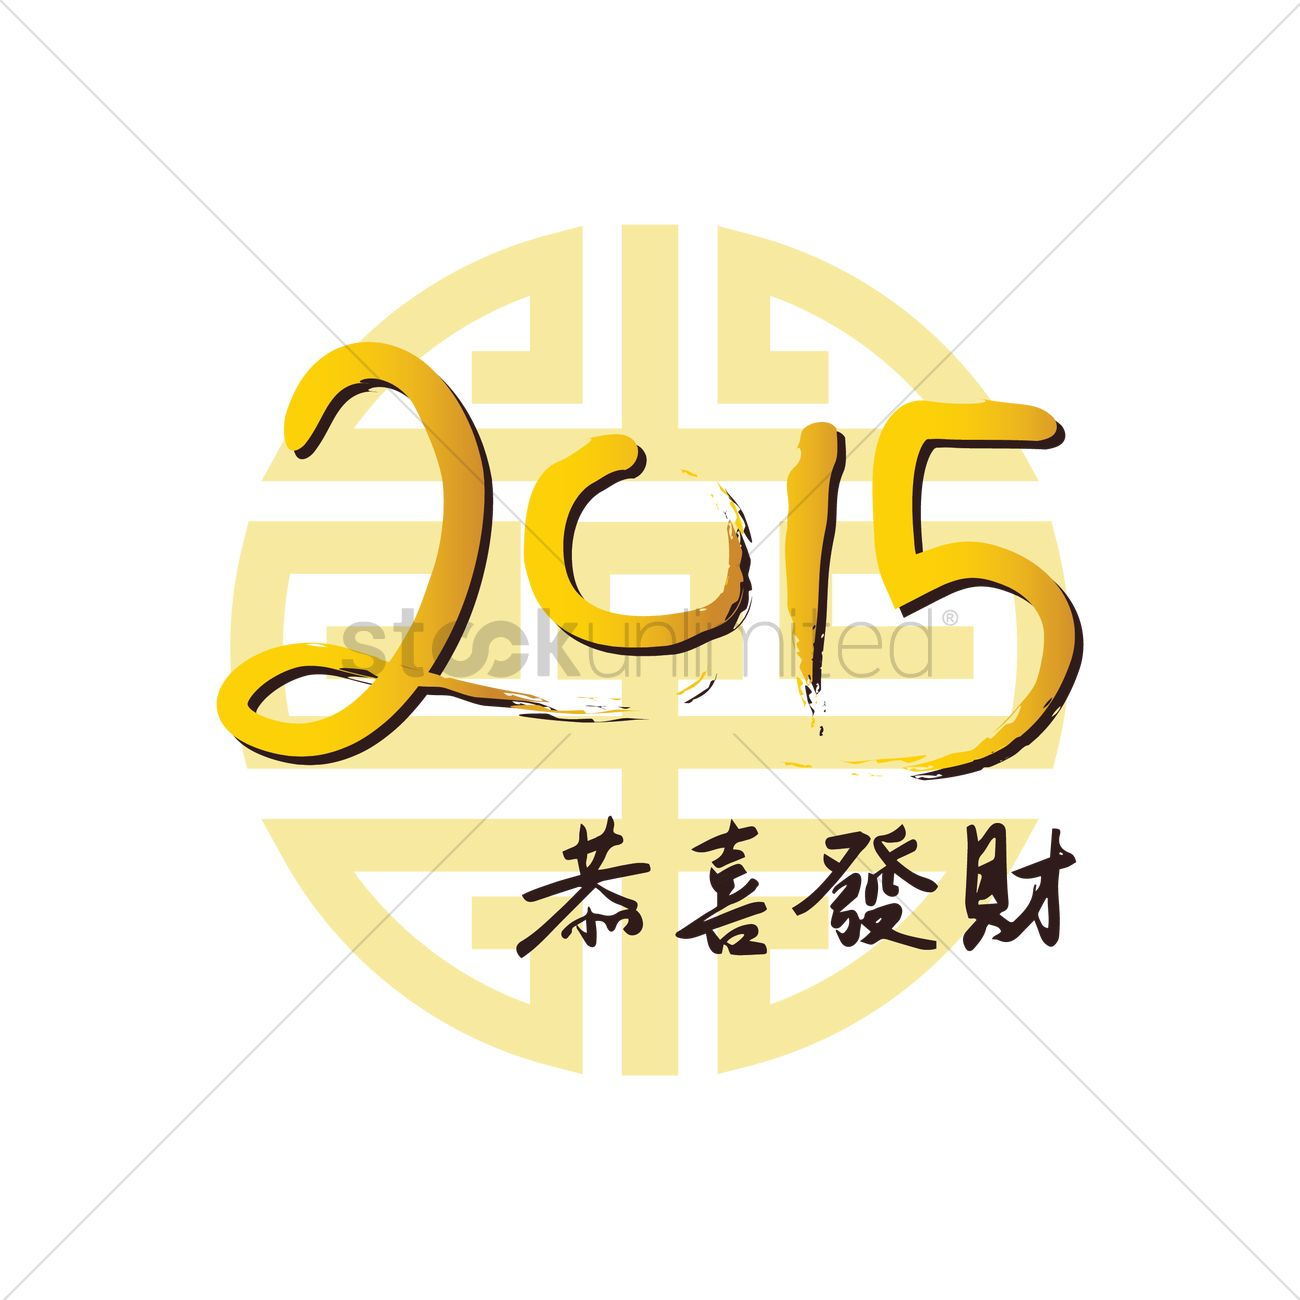 2015 chinese new year greeting design vector image 1408299 2015 chinese new year greeting design vector graphic m4hsunfo